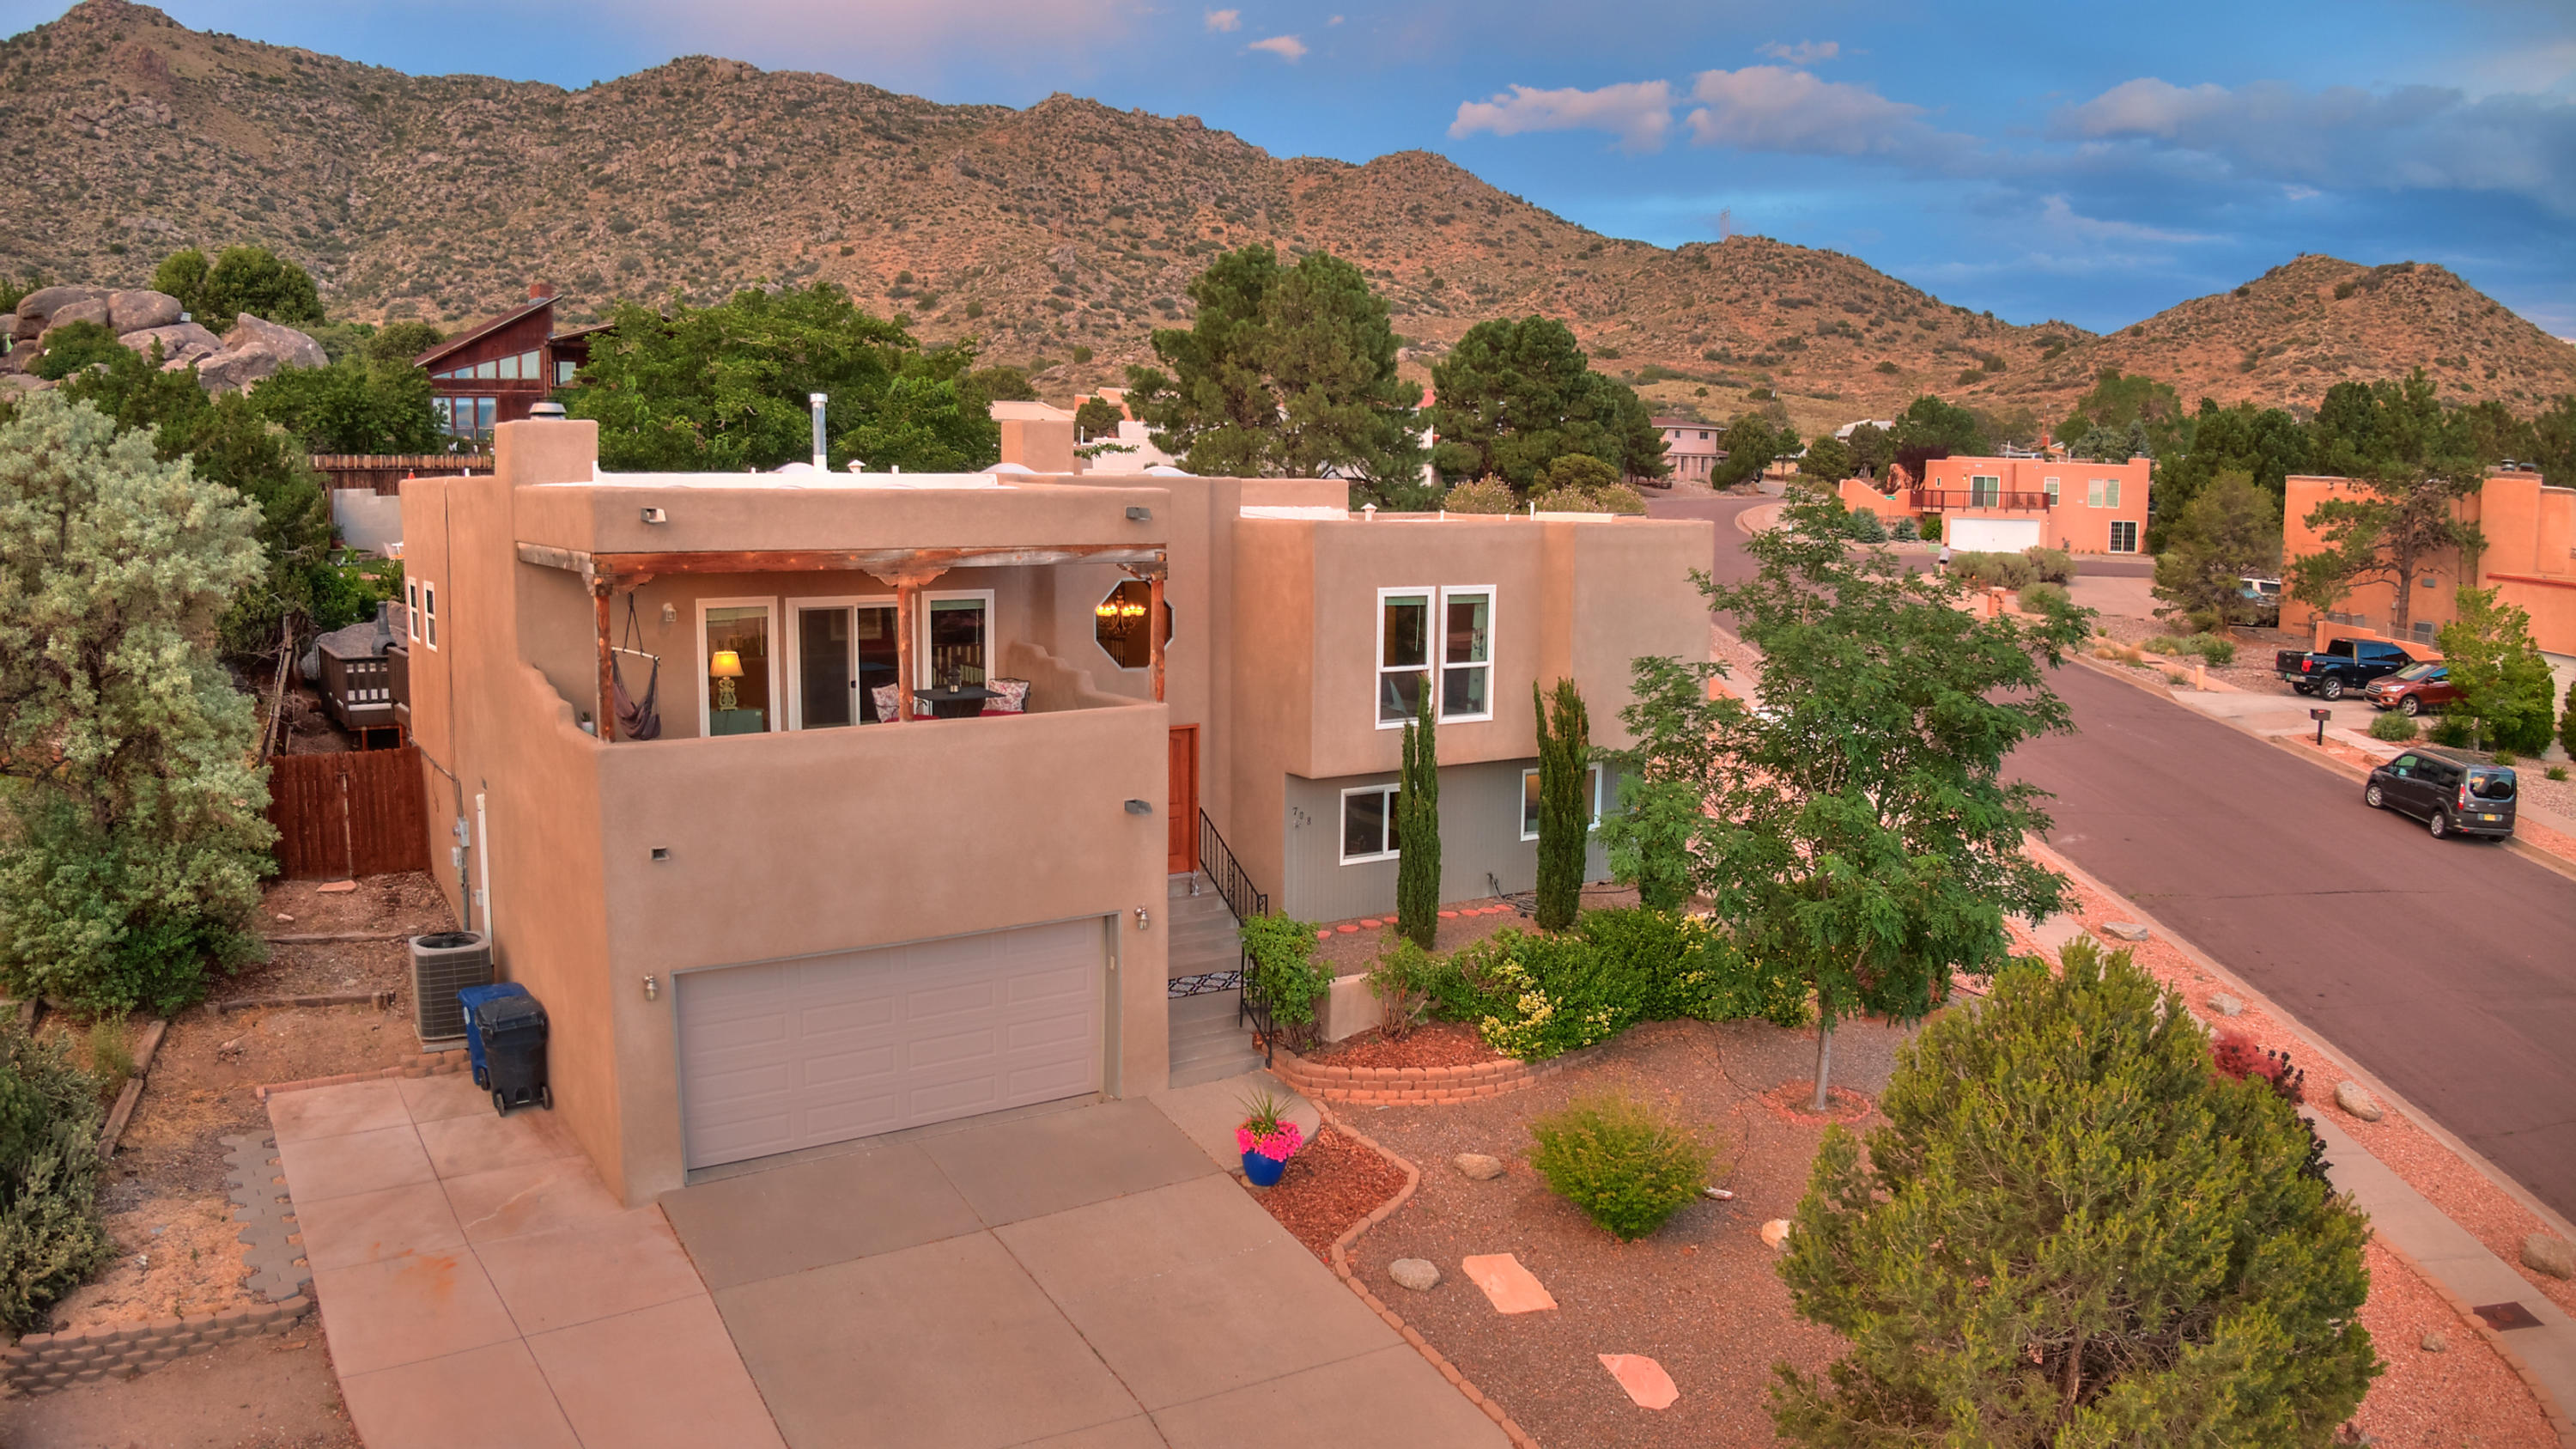 This gorgeous and meticulously maintained, East of Tramway, home has it ALL. Huge corner lot that backs up to open high desert landscape, private pool, completely updated interior, possible 5 bedrooms and amazing views from all angles. 2''x6'' construction through the ENTIRE home. The backyard is an entertainer's paradise. The 2017 stucco, 2016 GACOFlex roof, 2018 flooring, 2016 hot water heater, 2017 pool pump, among many other selling points, ensure that your new home will last for years to come needing minimal maintenance. The lawn furniture, fire pit, hot tub, wine fridge, refrigerator and dishwasher stay with the property so you can move right in! This home is an absolute gem in a spectacular neighborhood. Do not miss this one.